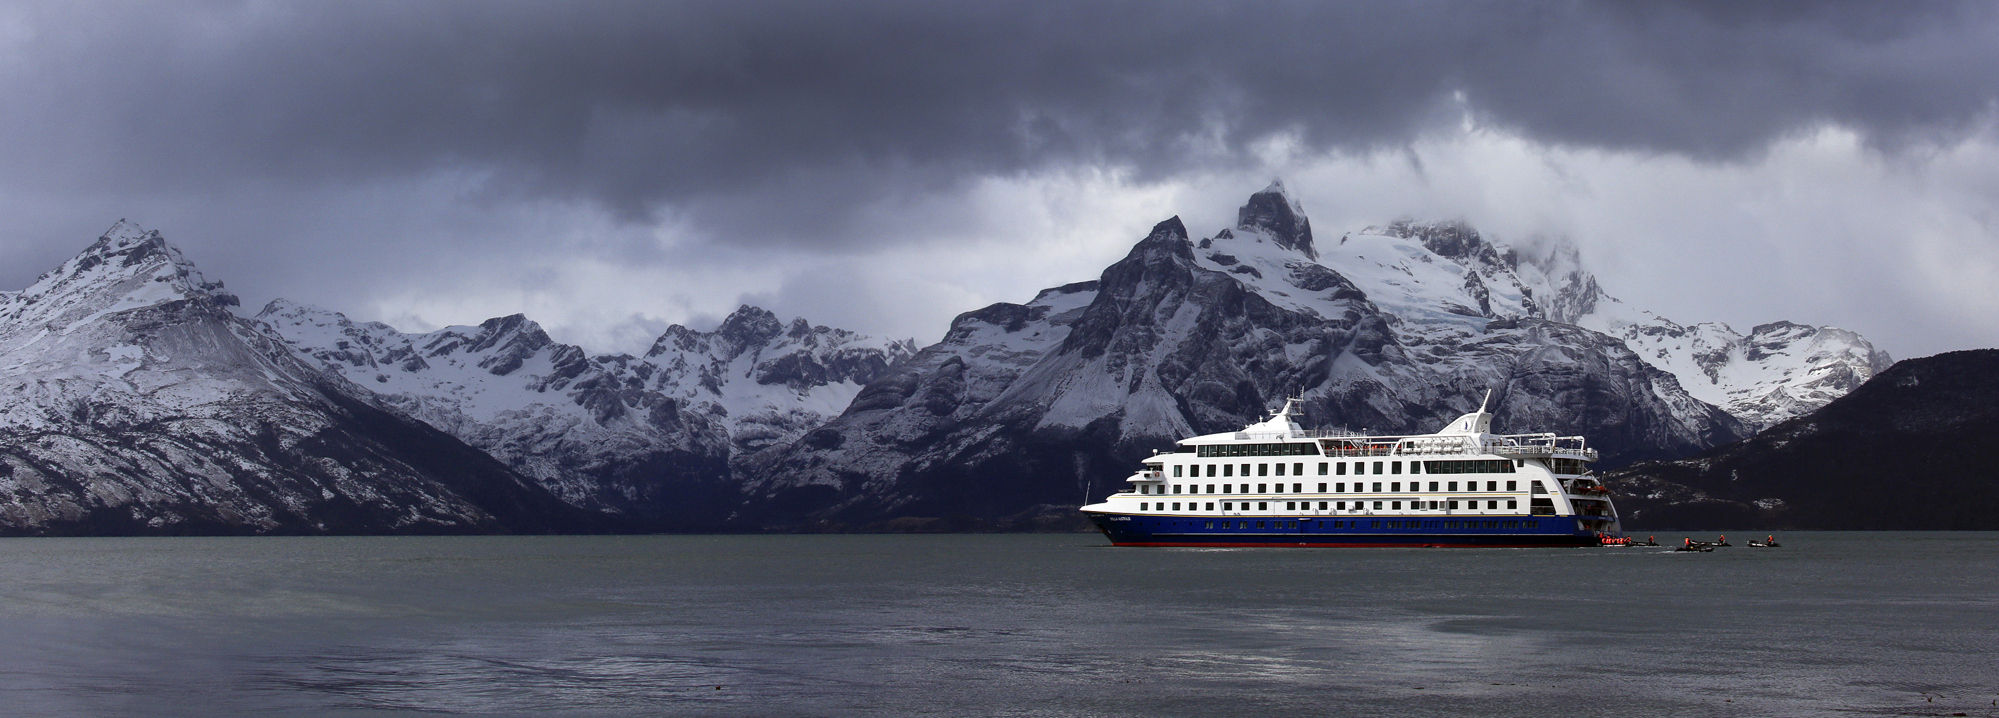 cruising-fjords-patagonia